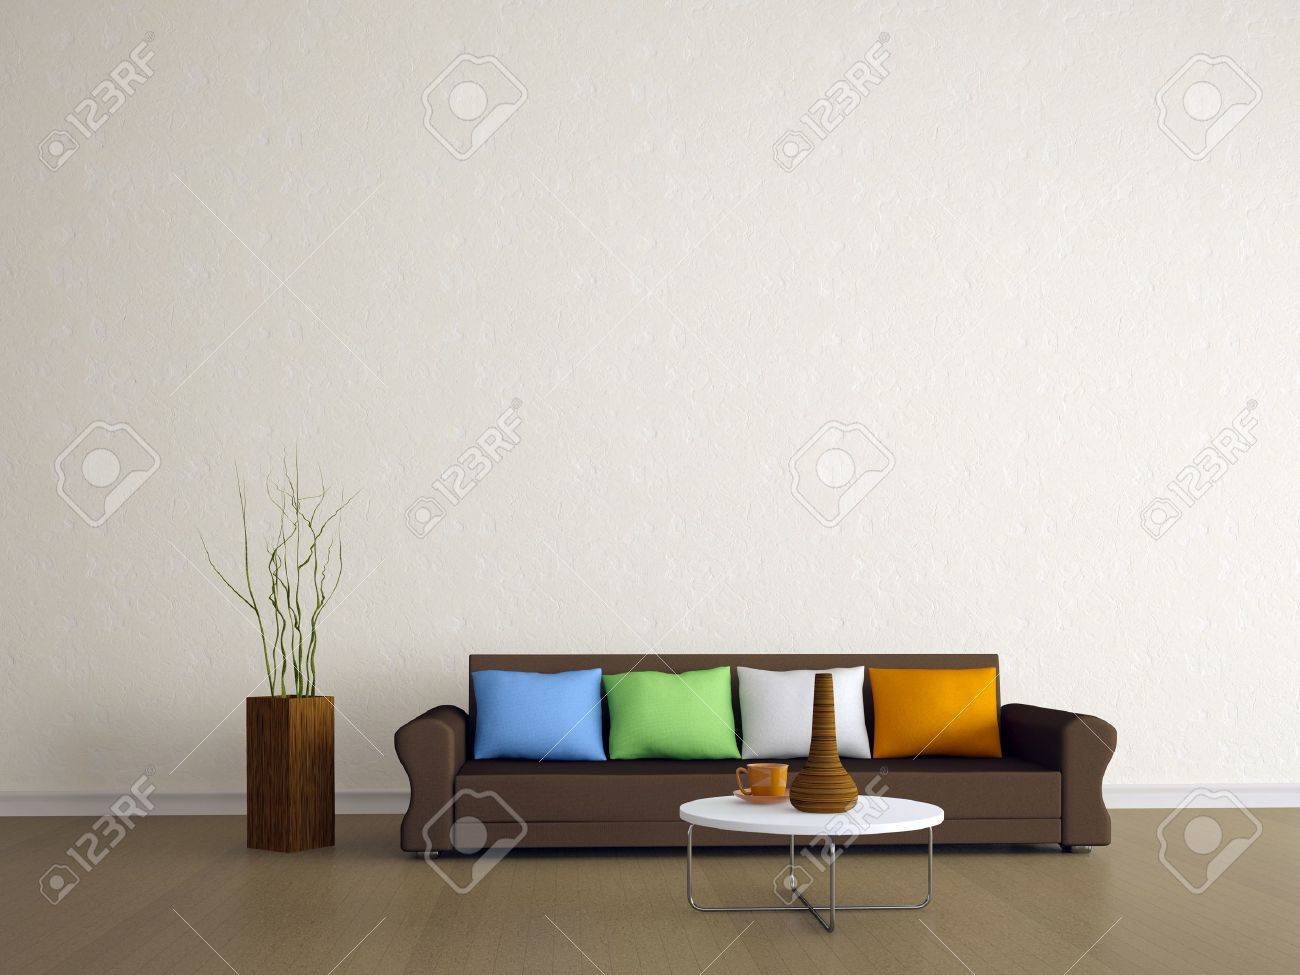 The Brown Sofa With Four Colored Pillows Stock Photo, Picture And ...